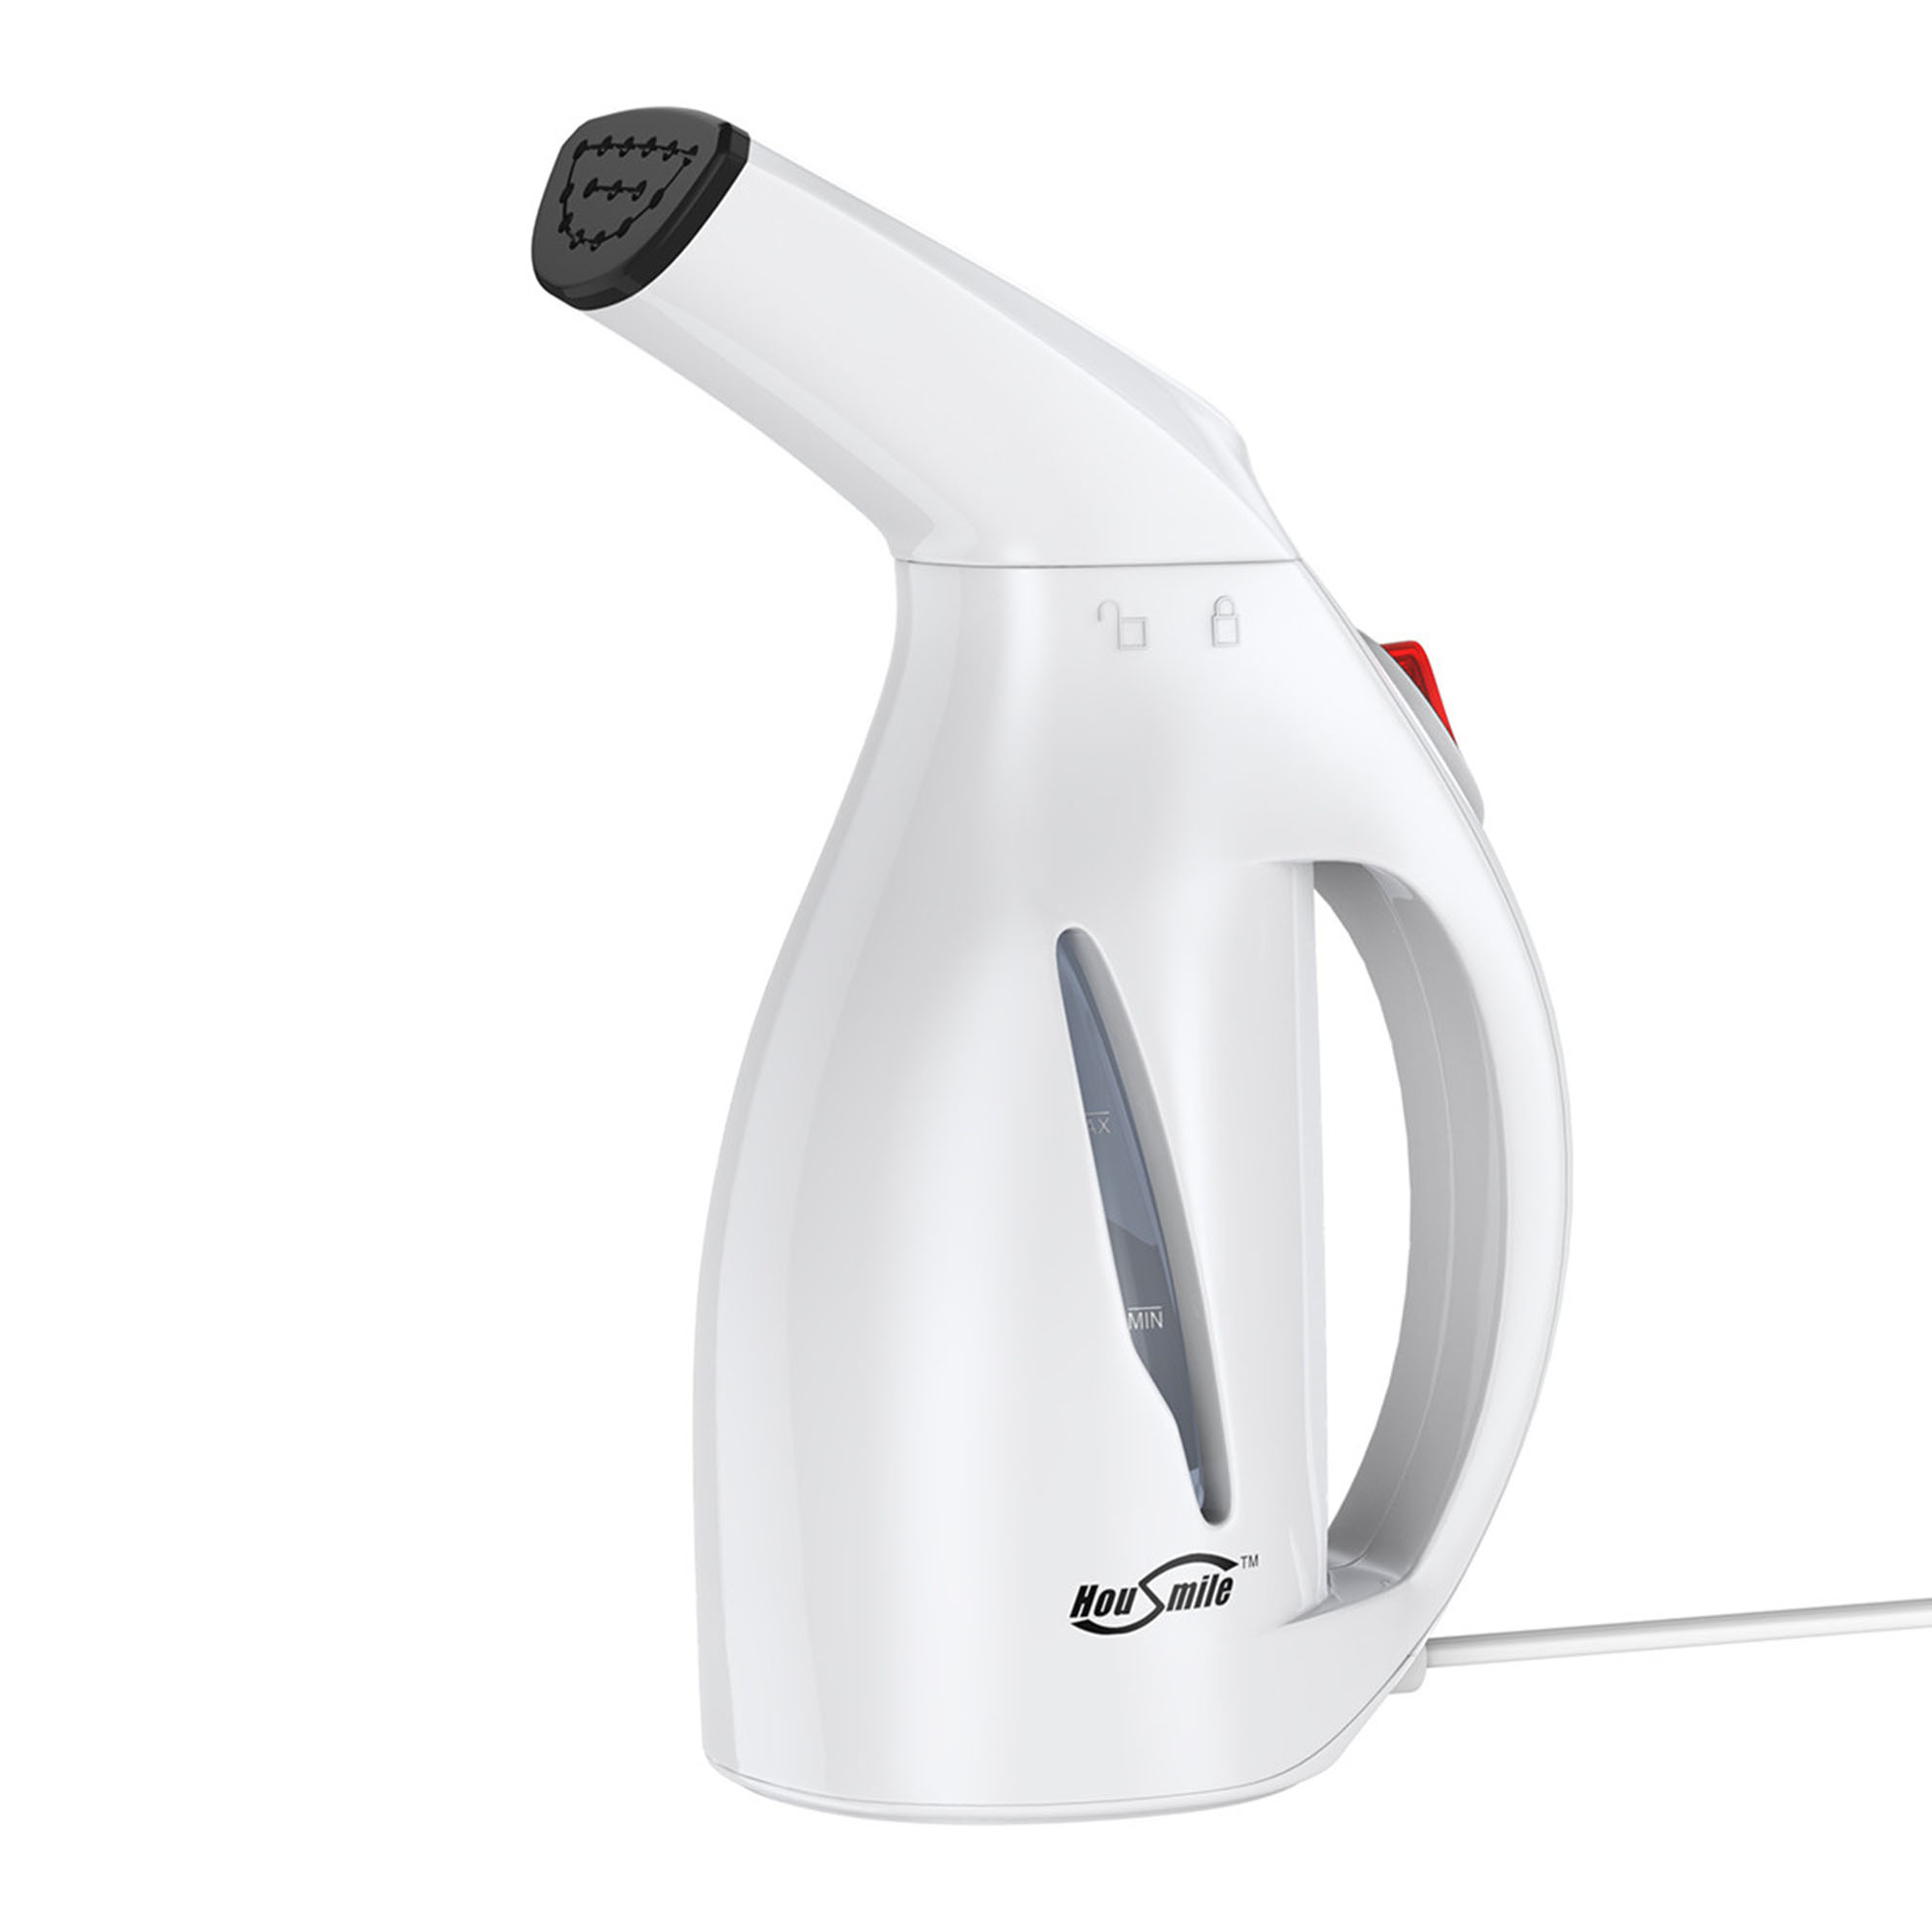 Housmile Handheld Garment Steamer Fast Heat-up 60ml Portable Fabric Steamer with Brush for Home and Travel